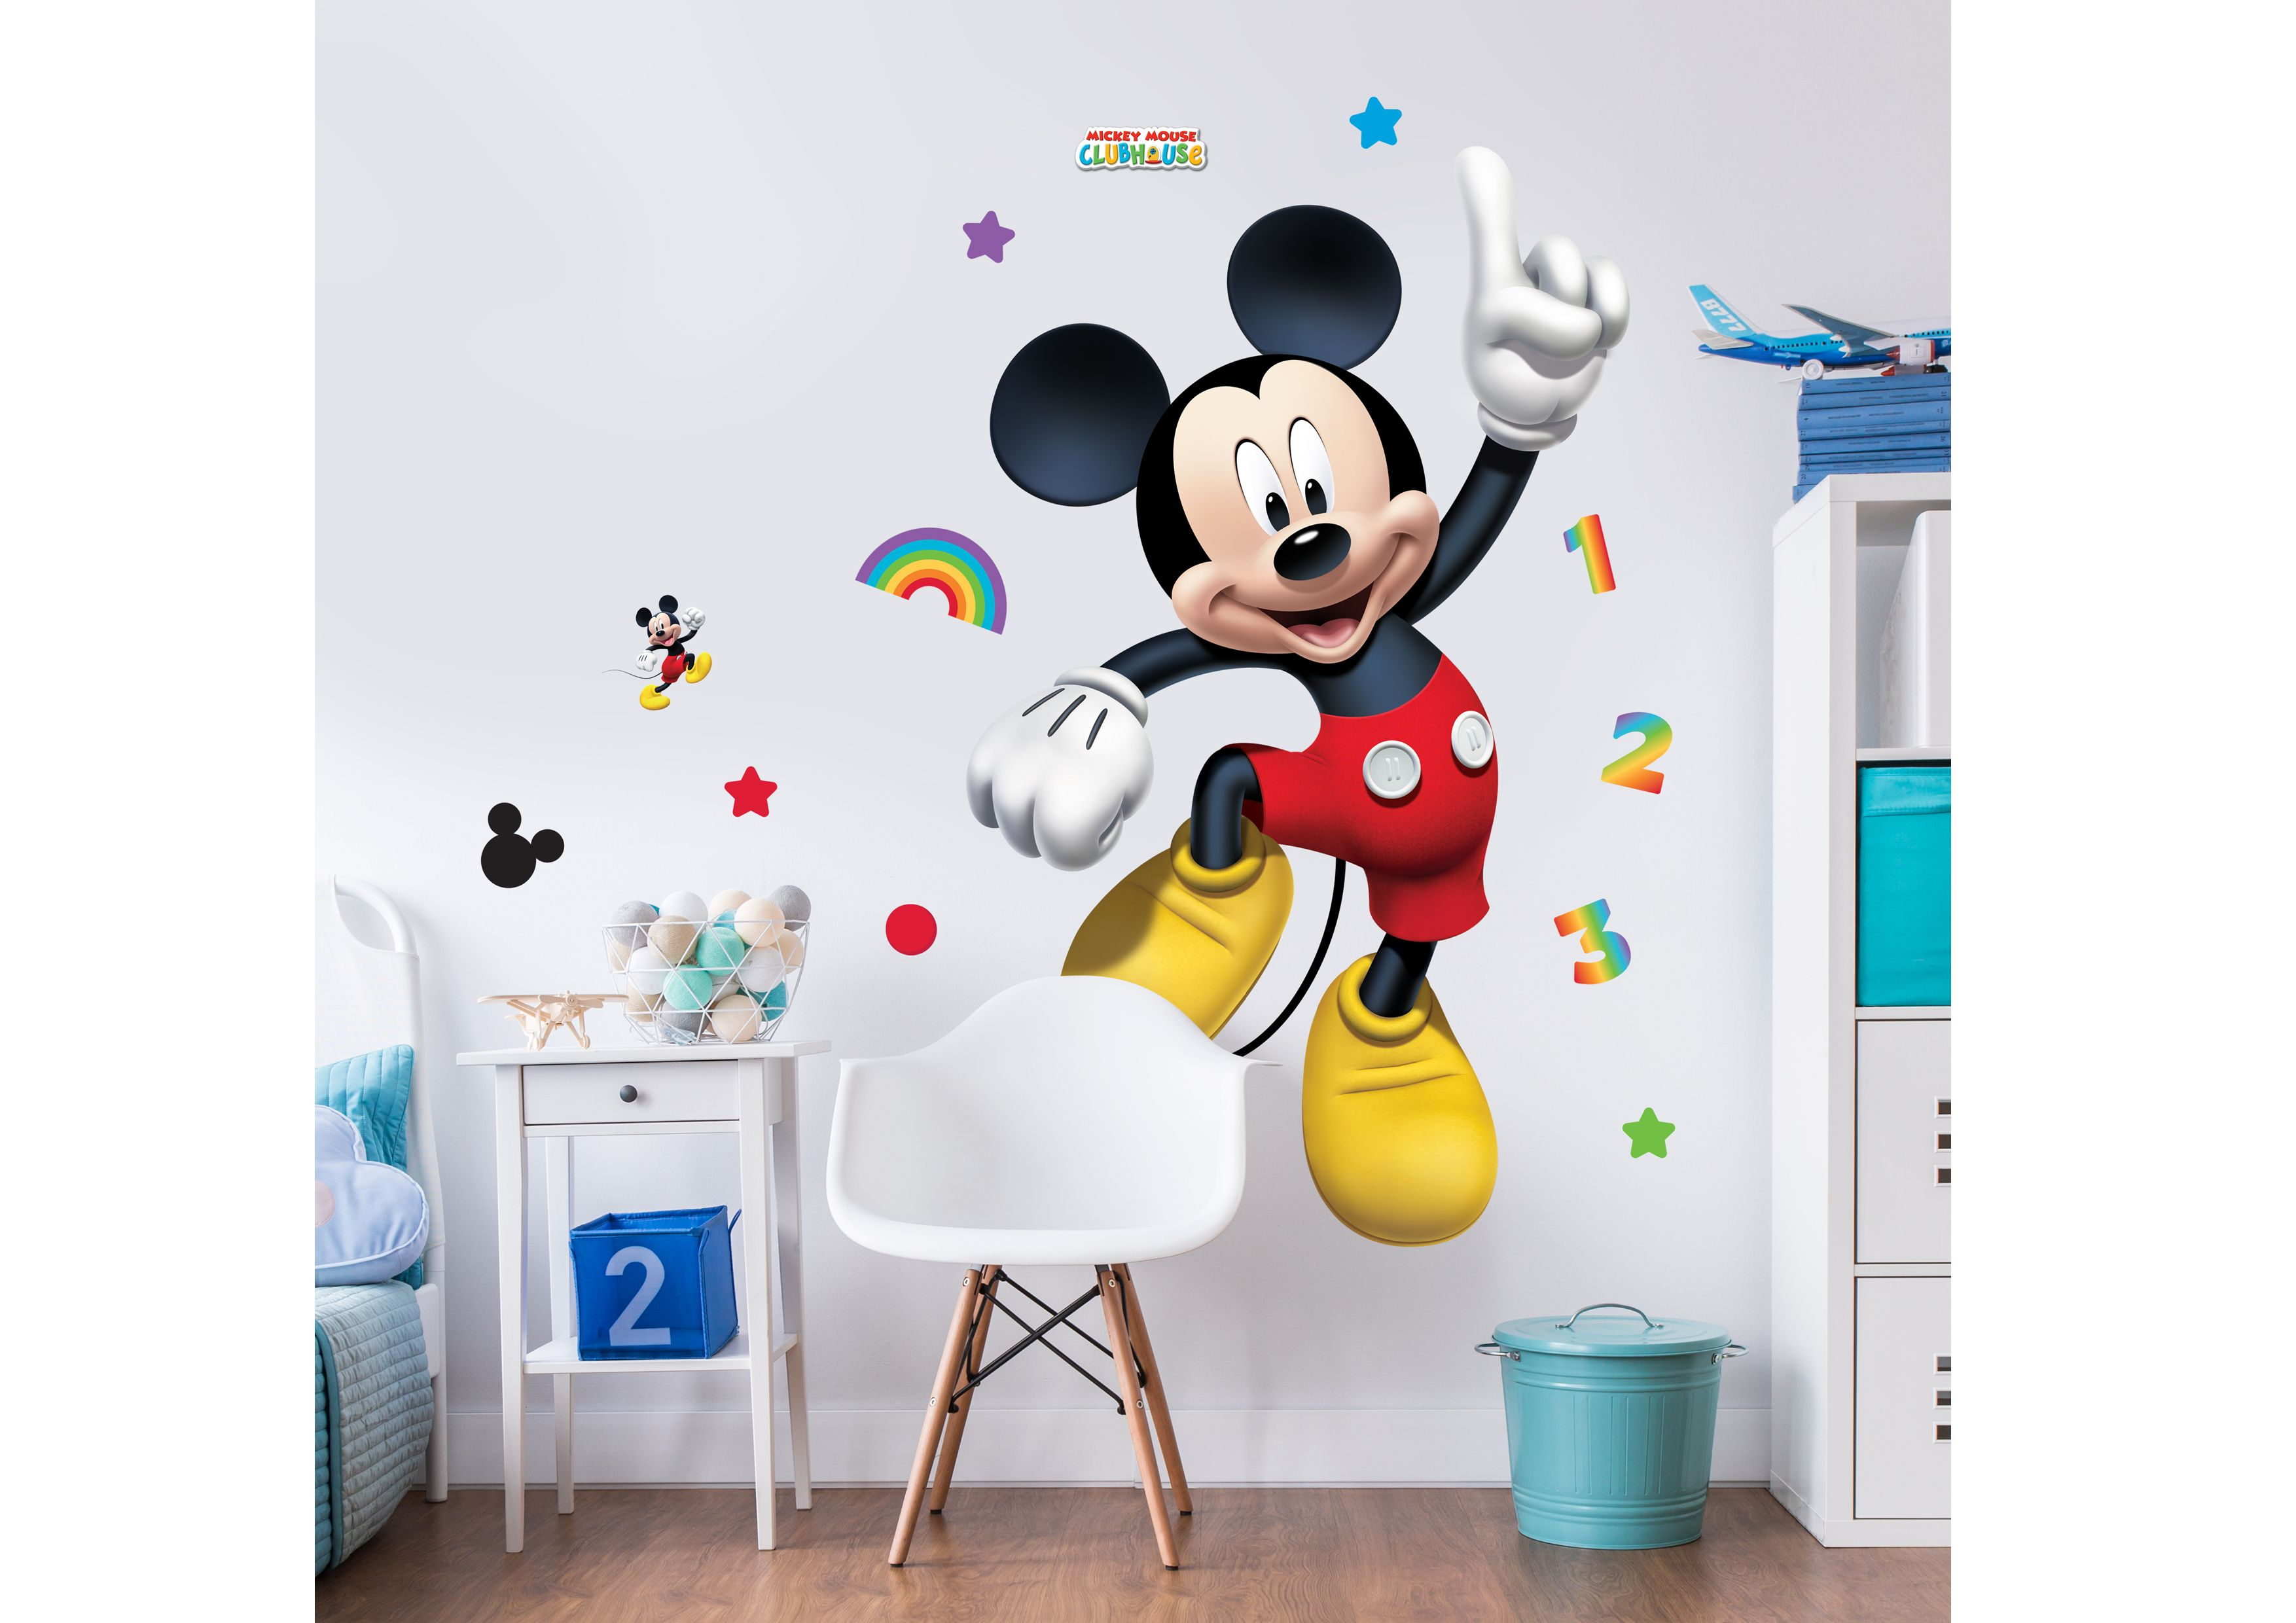 Mickey Mouse Bedroom Wallpaper Mickey Mouse Wallpaper For Bedroom Uk Bedroom Style Ideas